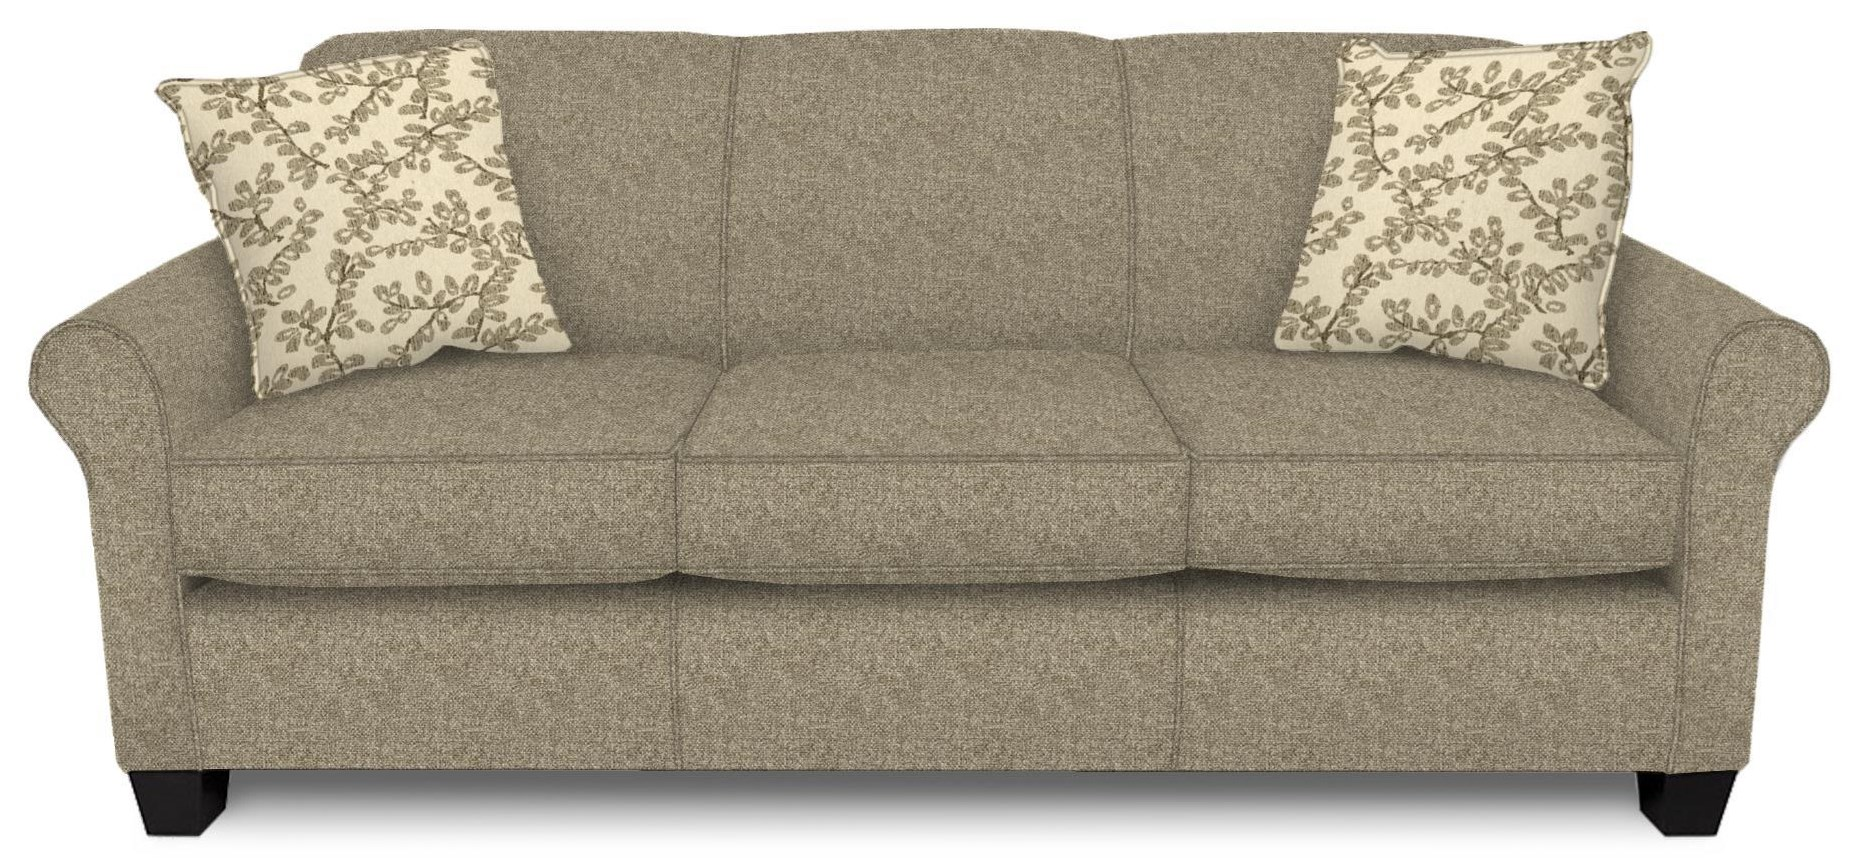 Damian Pepper Sofa by England at Crowley Furniture & Mattress